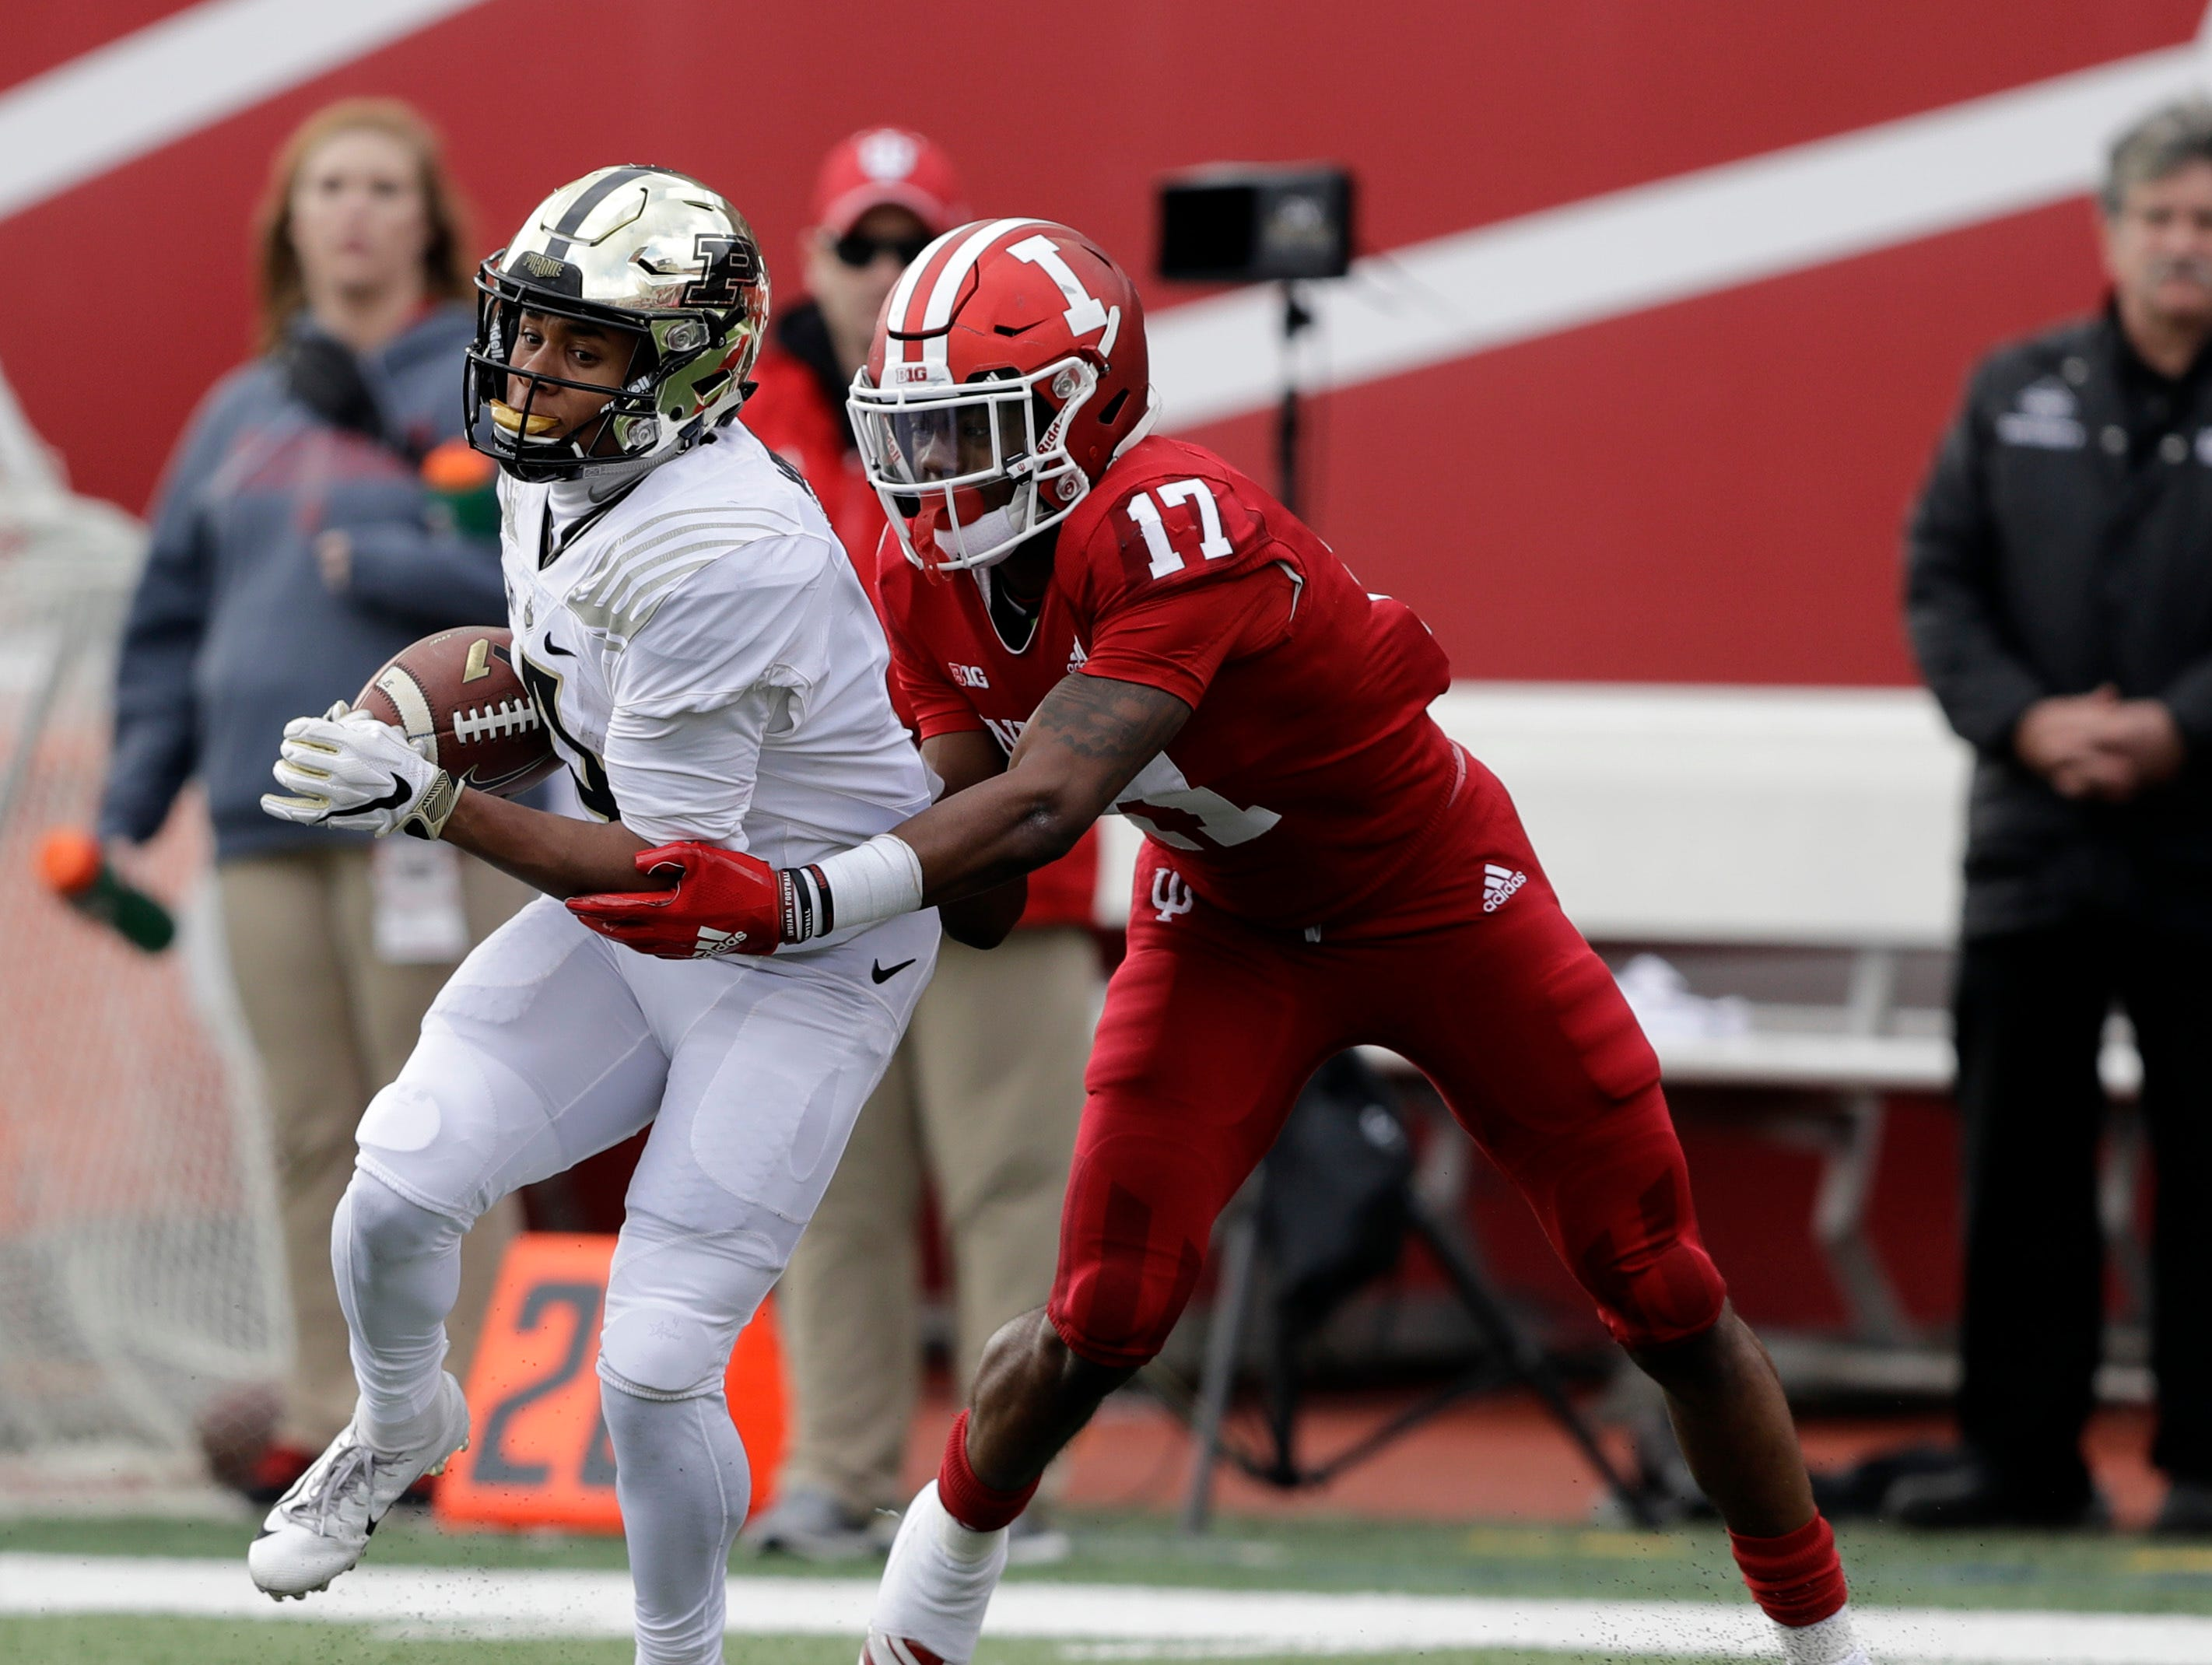 Purdue's Rondale Moore (4) runs out of the tackle of Indiana's Raheem Layne for a touchdown during the first half of an NCAA college football game, Saturday, Nov. 24, 2018, in Bloomington, Ind. (AP Photo/Darron Cummings)